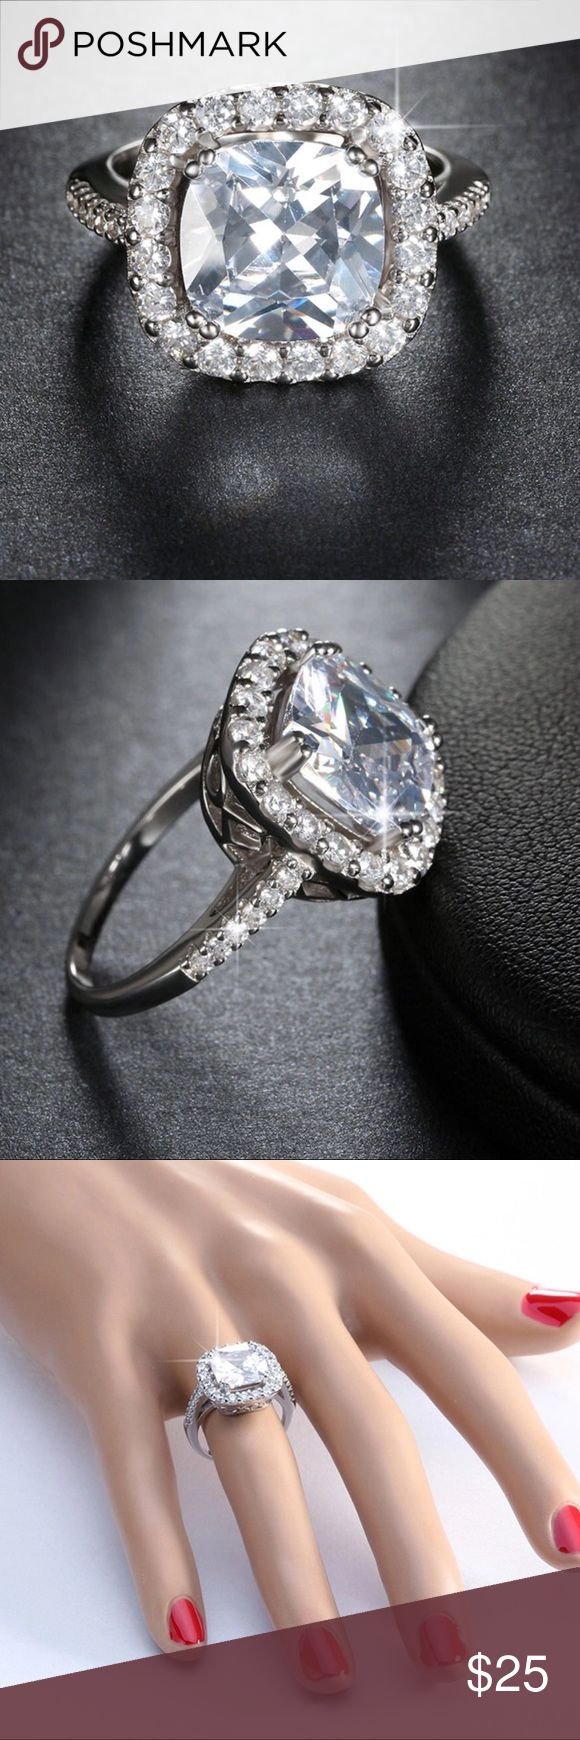 "💍5 Carat Cushion Cut Halo Ring 💍 5 carat AAA Simulated Diamond Cushion Cut fashion Ring. 3 layers of Platinum Plated over White Brass. High polished gives this ring a WOW factor!  Beautiful High quality Austrian Crystal center stone. Wear as an engagement, cocktail, or statement ring. Great for a birthday gift. Wear in place of your ""Expensive"" ring!  Lead, Nickel, & Cadmium free.  *NOTE: Remember to remove jewelry before direct contact with any water, lotions, and/or perfumes.   *Selling…"